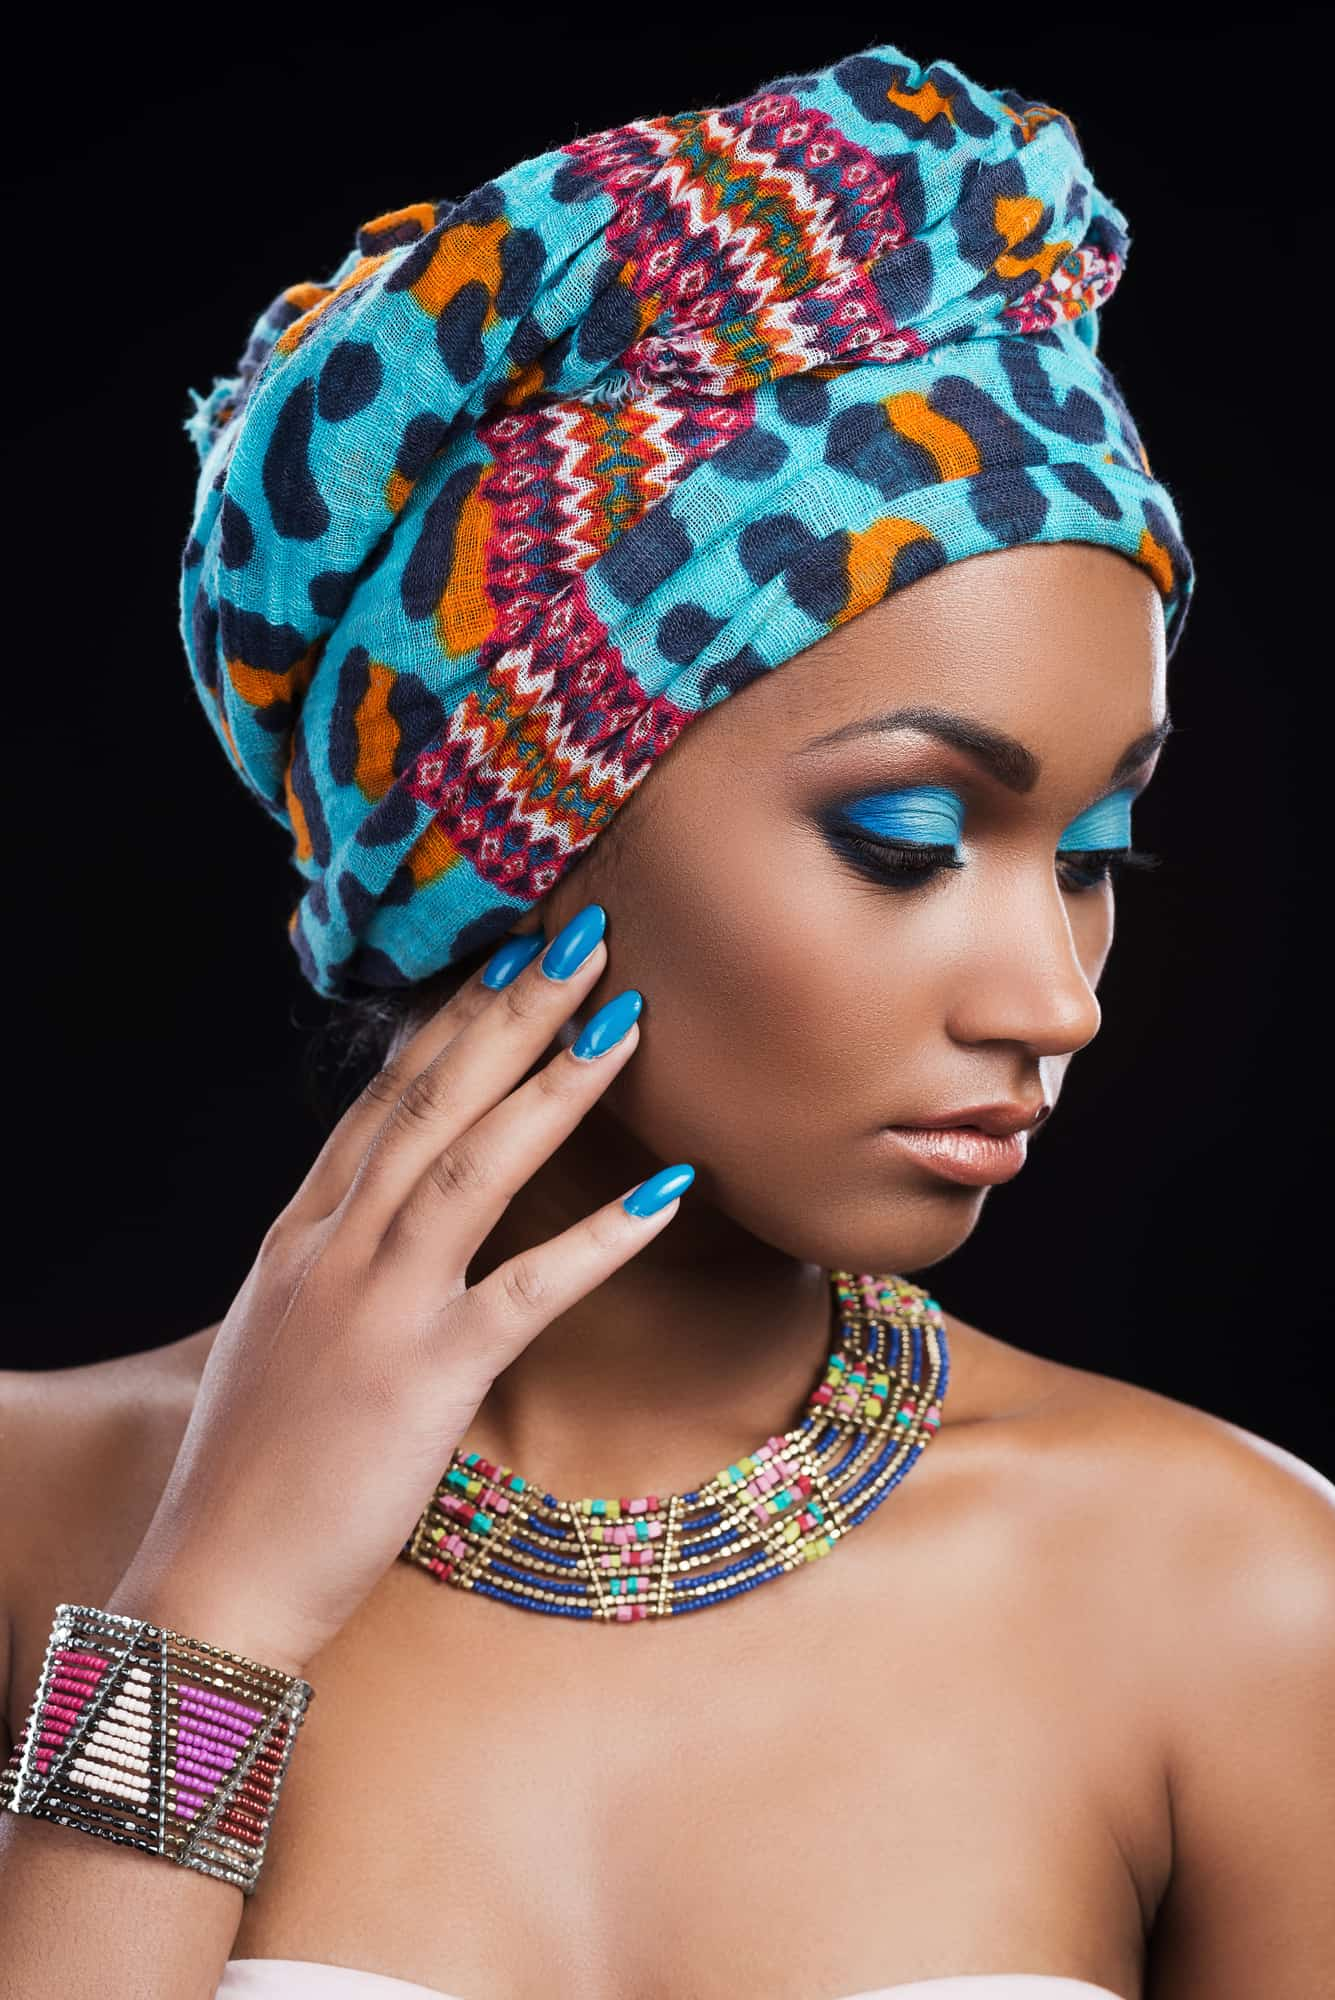 Confident in her perfect look. Beautiful African woman wearing a headscarf and necklace looking away and touching her face